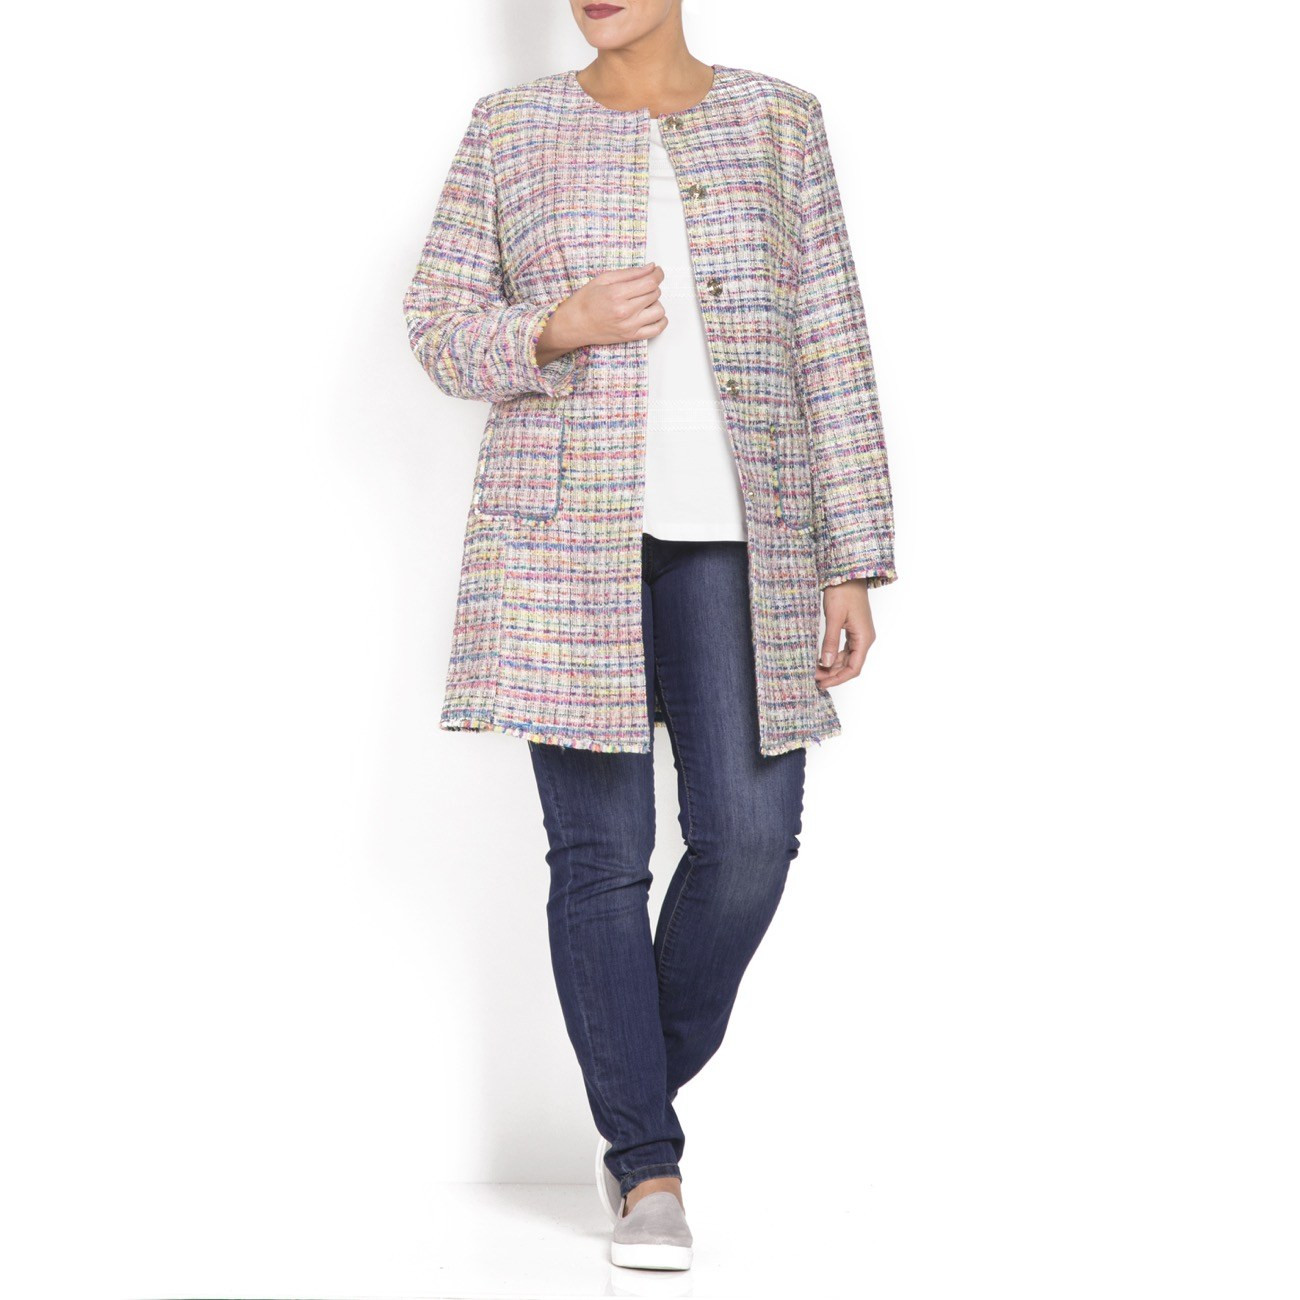 Multi Coloured Tweed Jacket With Fringe Detail